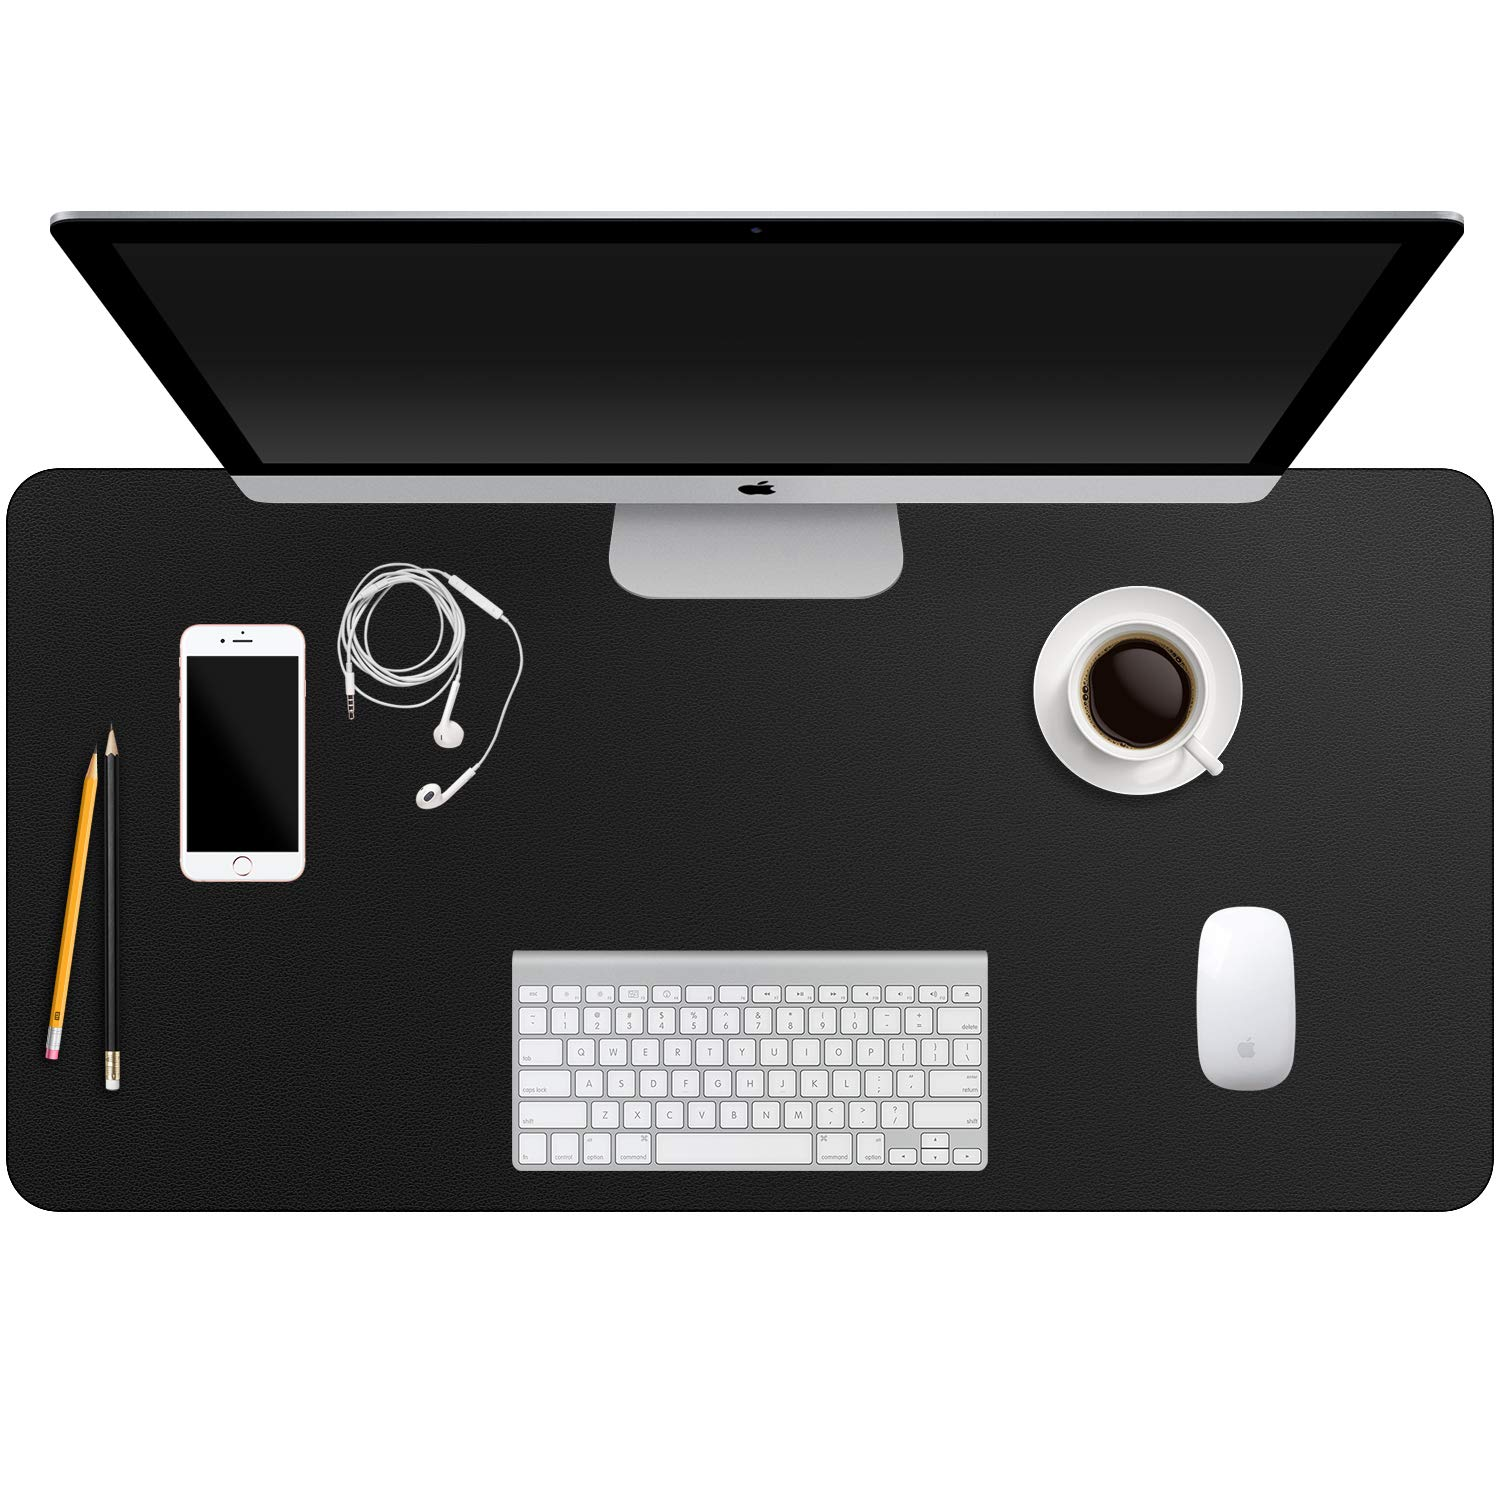 Desk Pad Black,Computer Desk Mat Leather,Desk Blotter Protector and Waterproof Desk Writing Pad for Kids,Office/Home,31.5''x15.8''